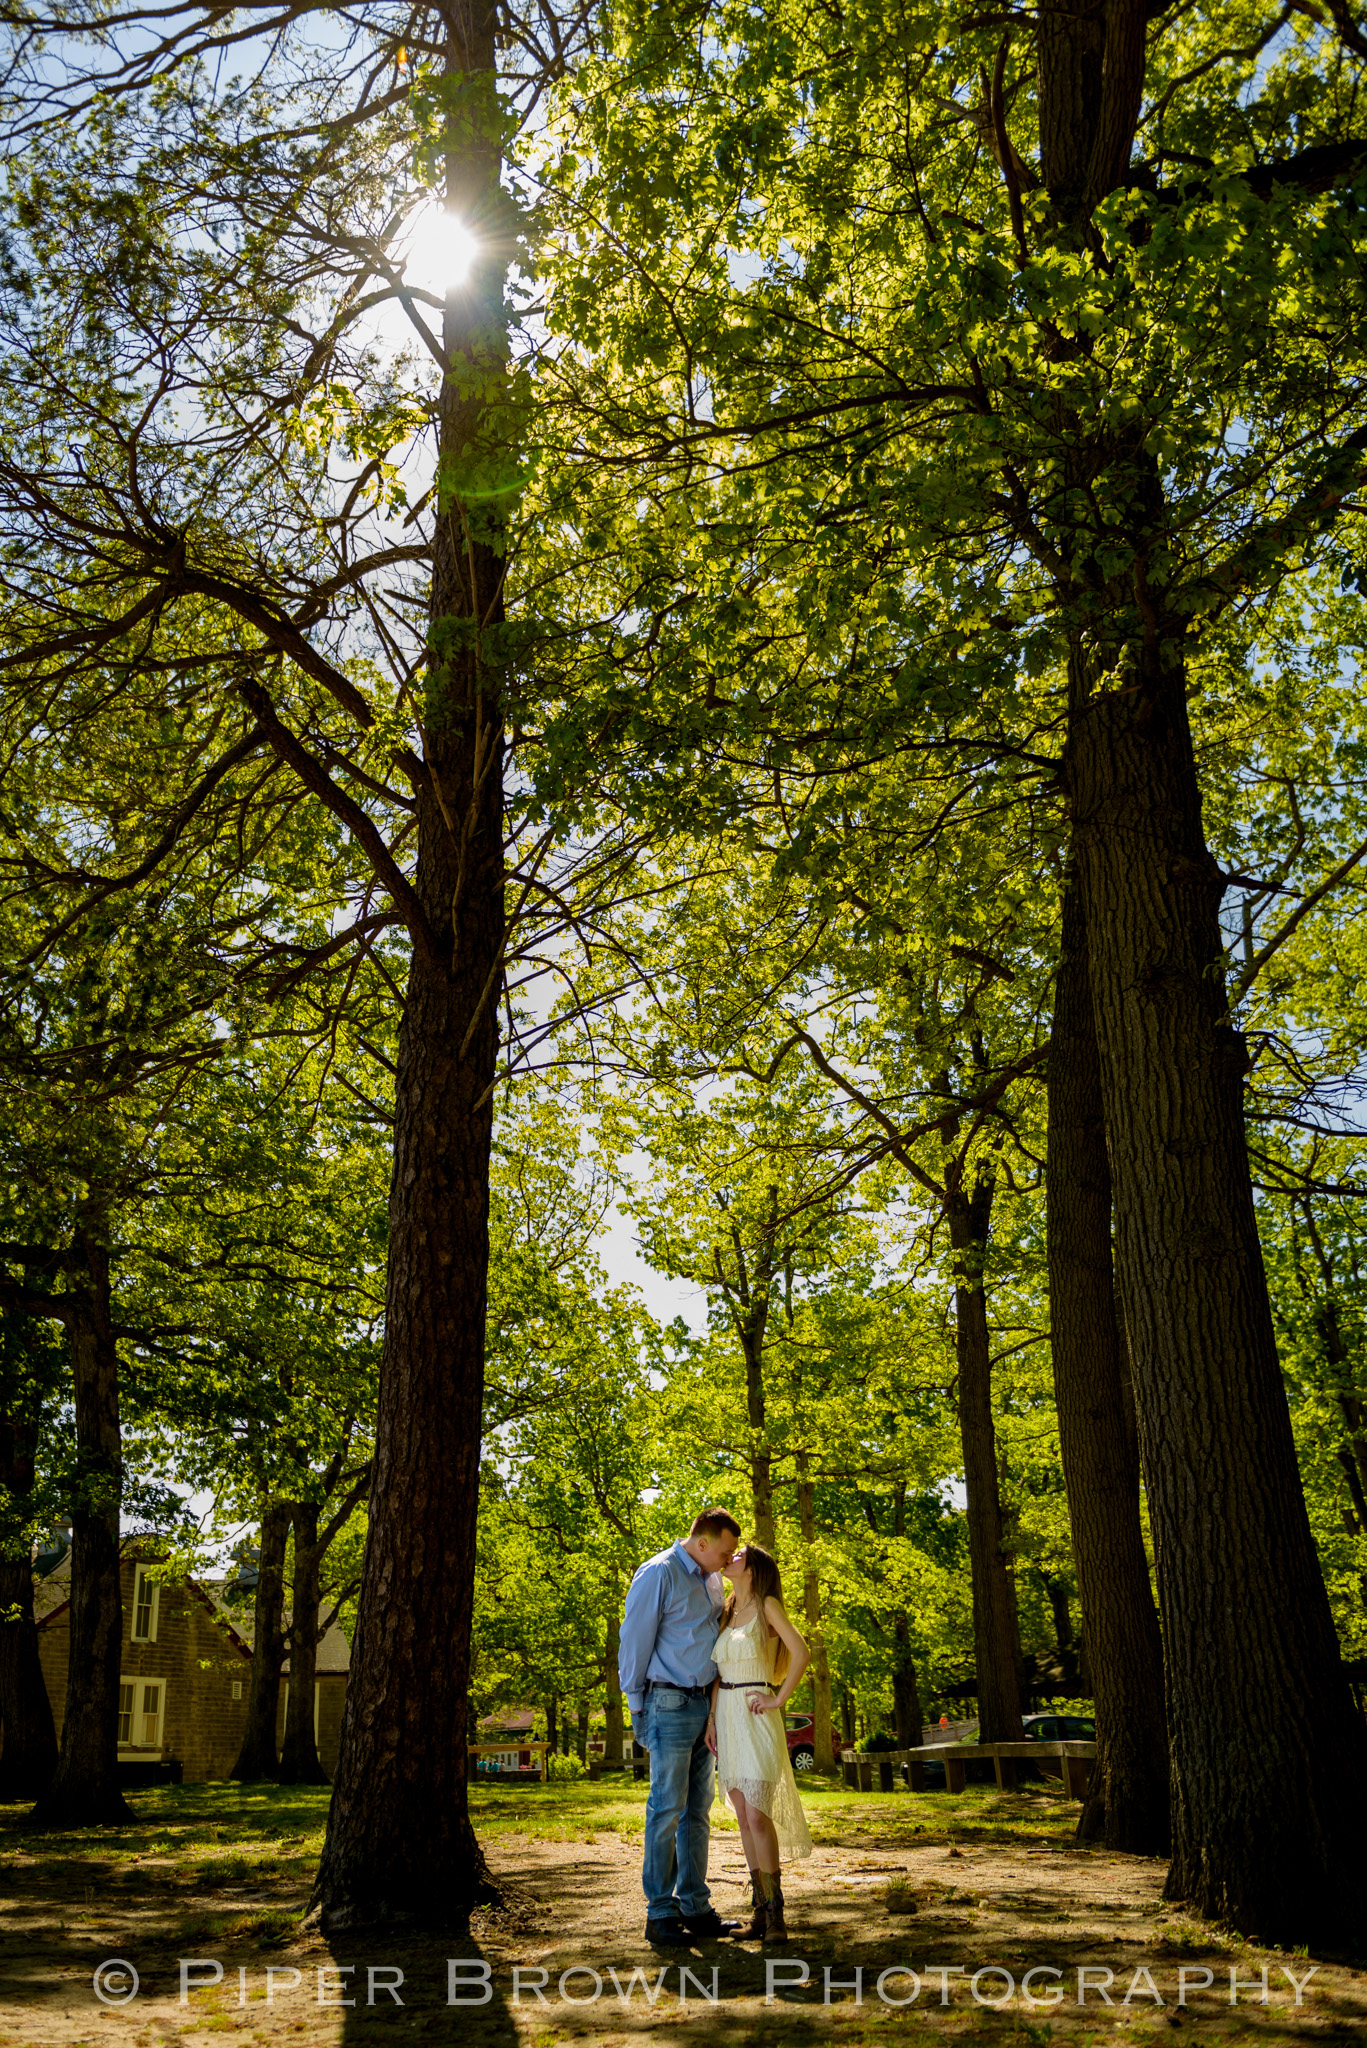 Man and woman kissing in a park